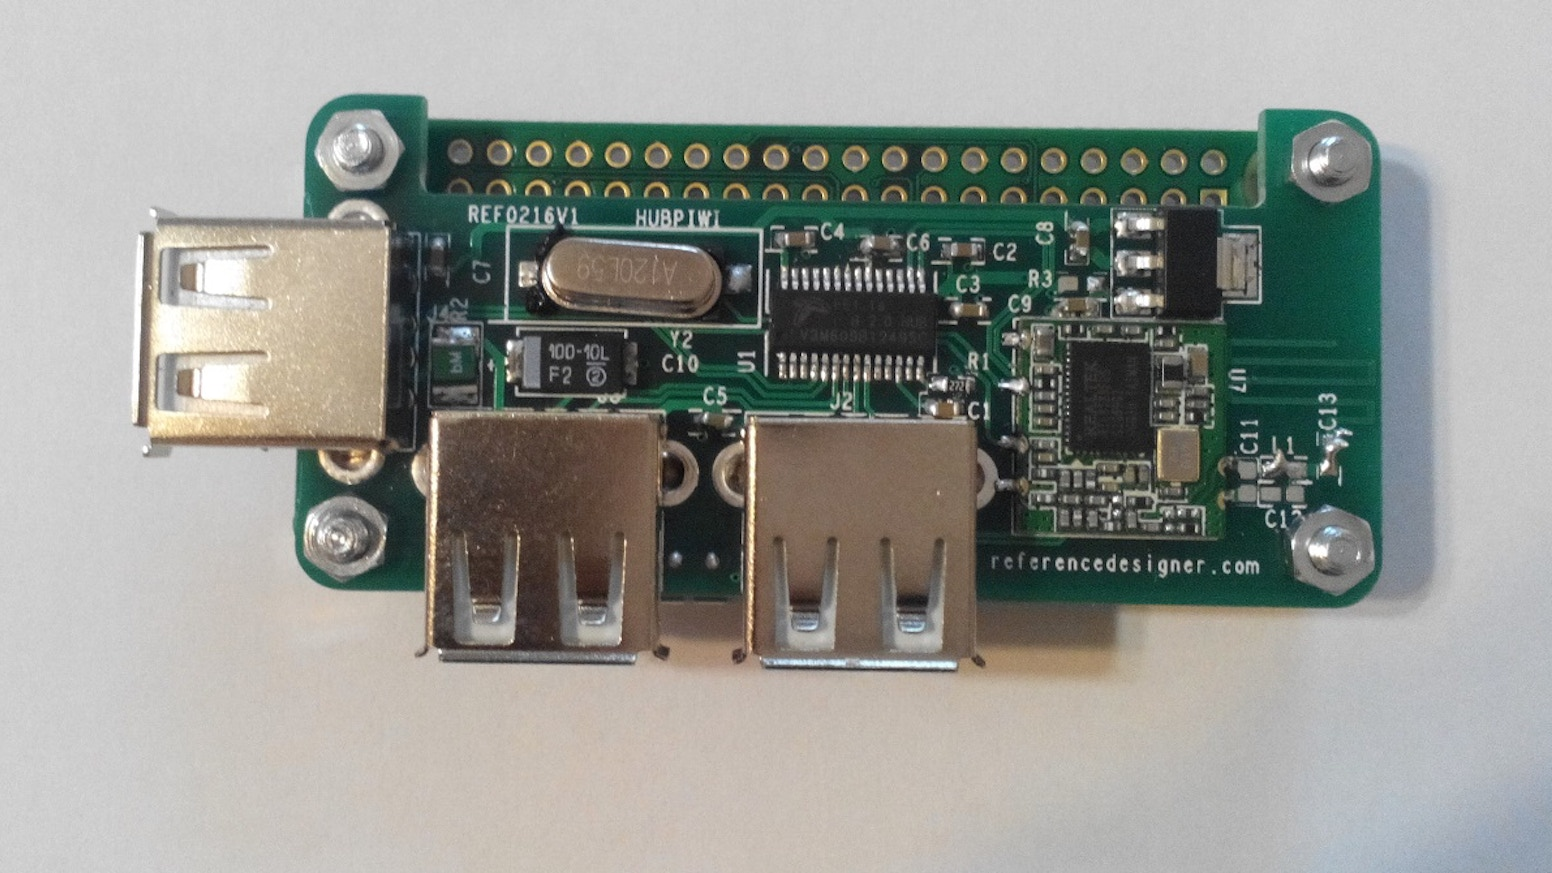 HubPiWi is a USB 2.0 Hub for Raspberry Pi Zero with three USB 2.0 Ports and  an on board Wifi. No Connector or cable is required.